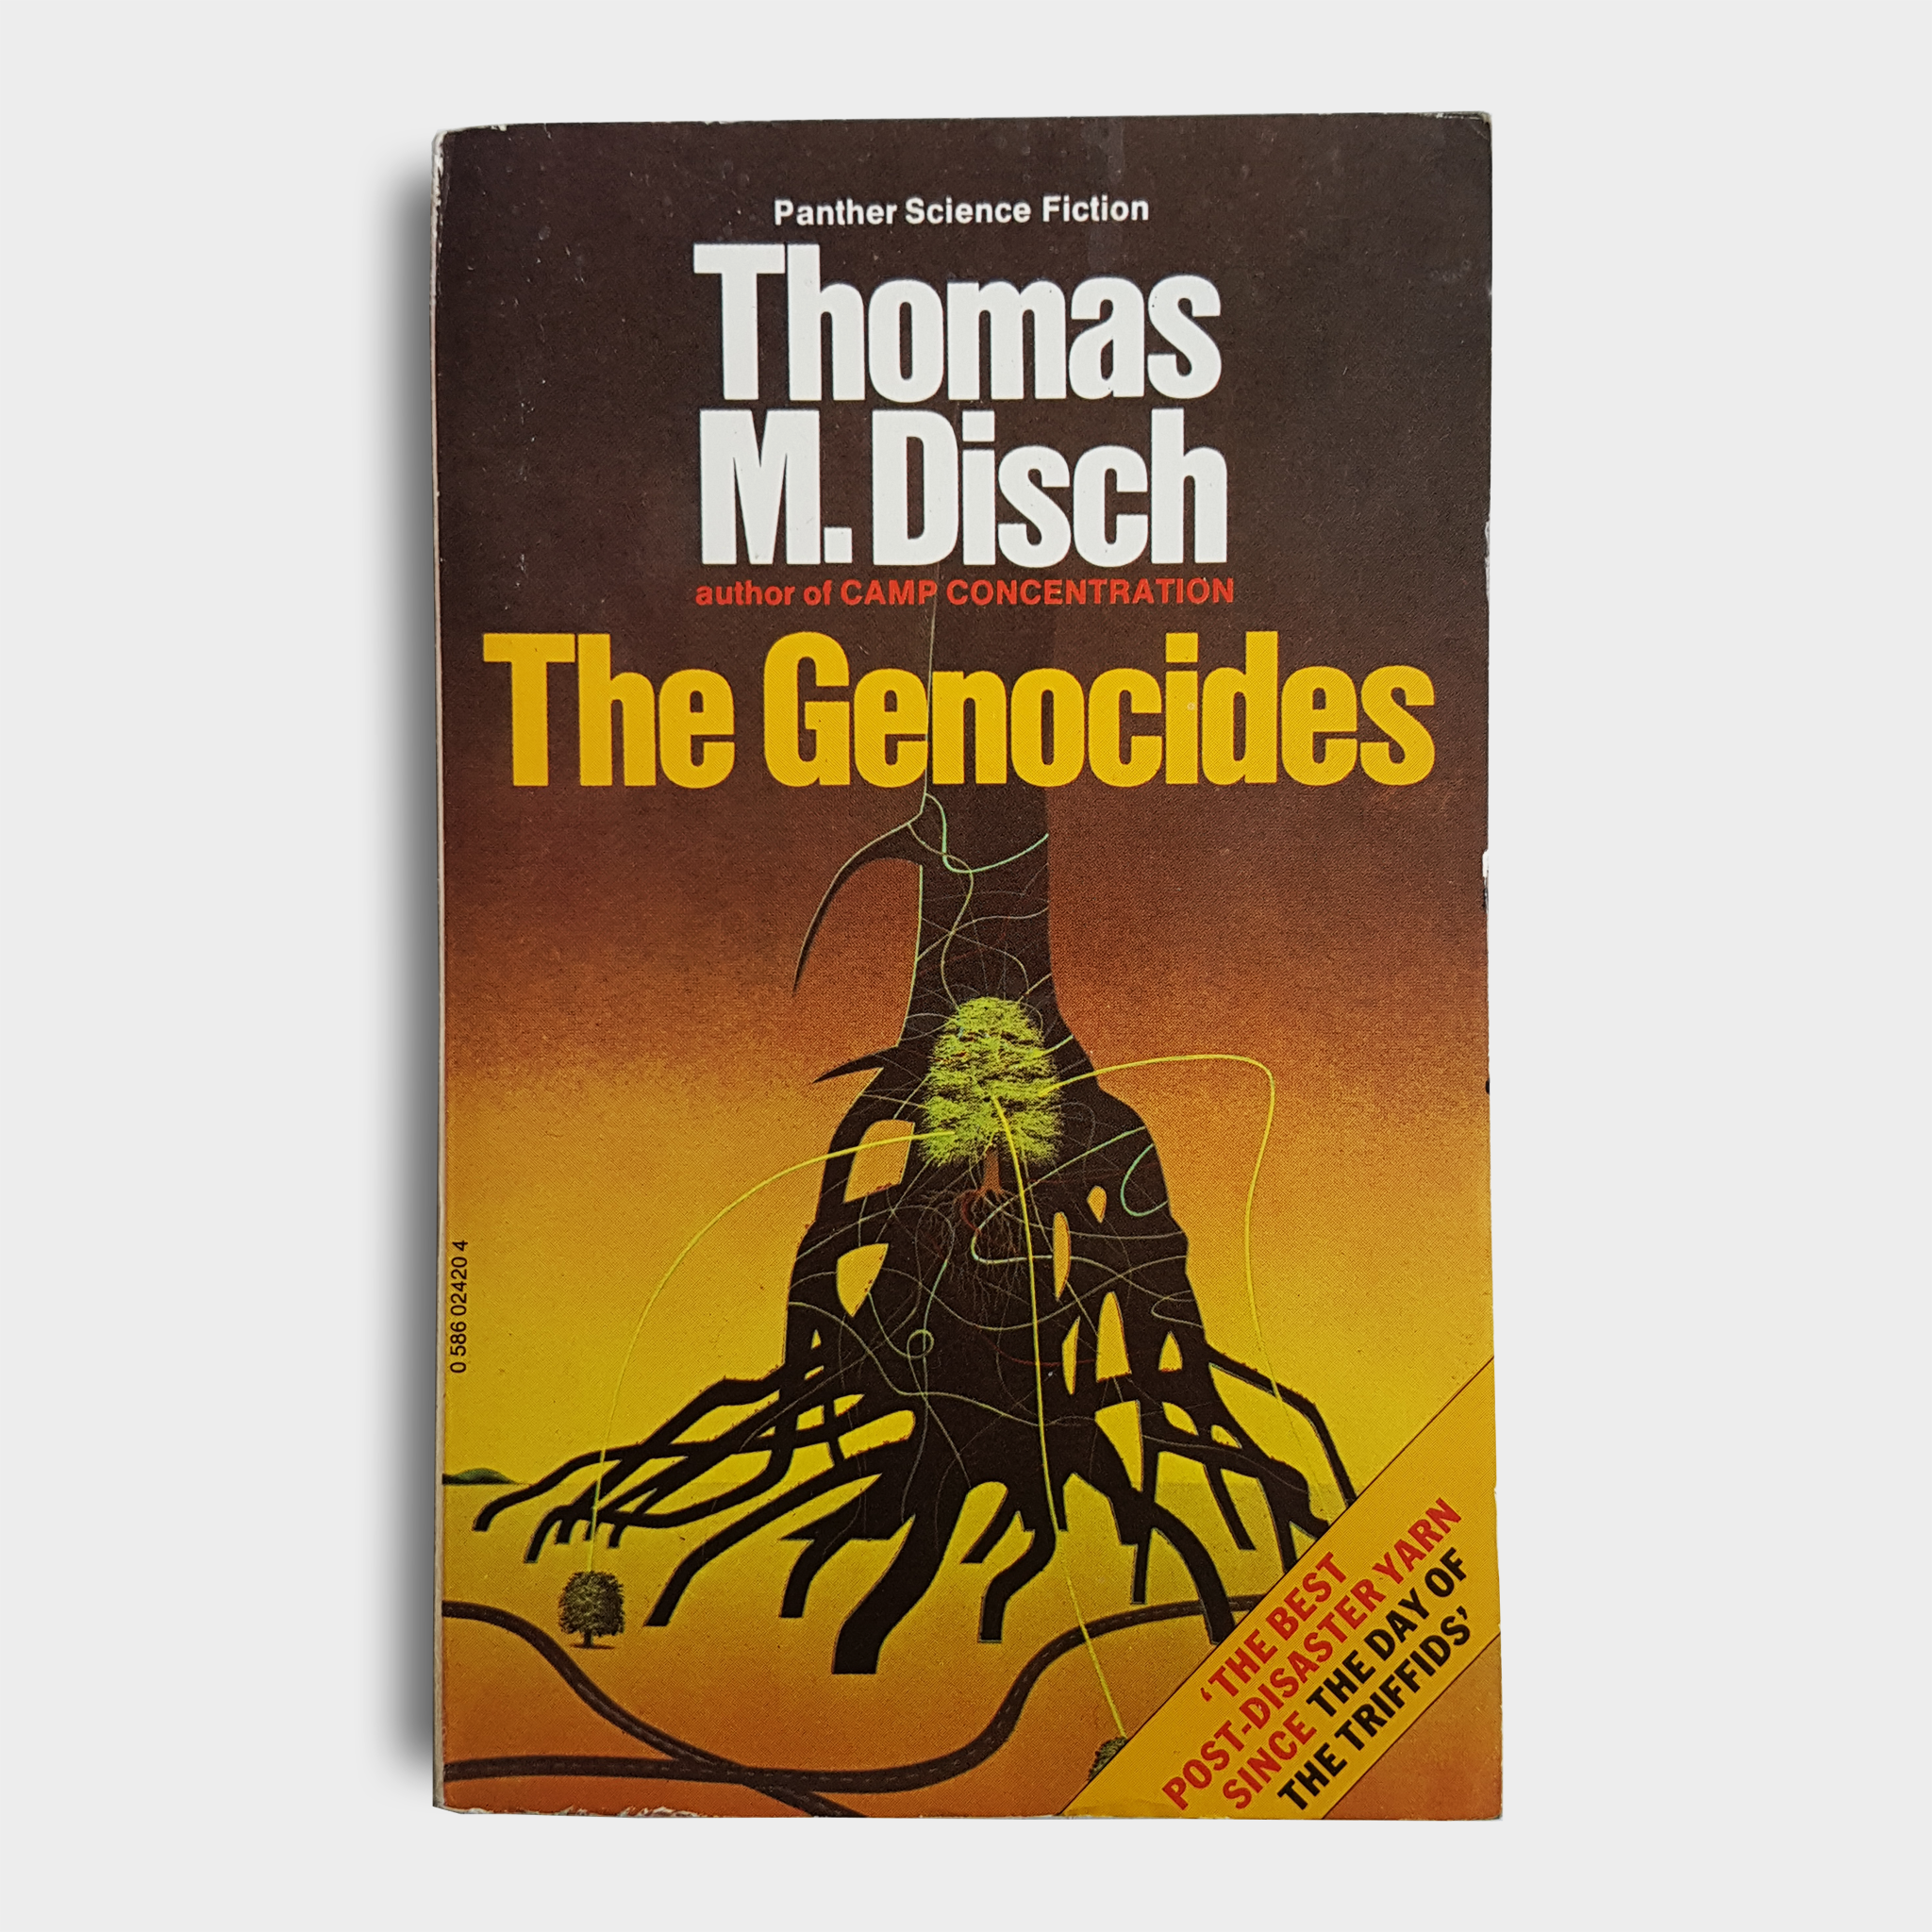 Thomas M. Disch - The Genocides